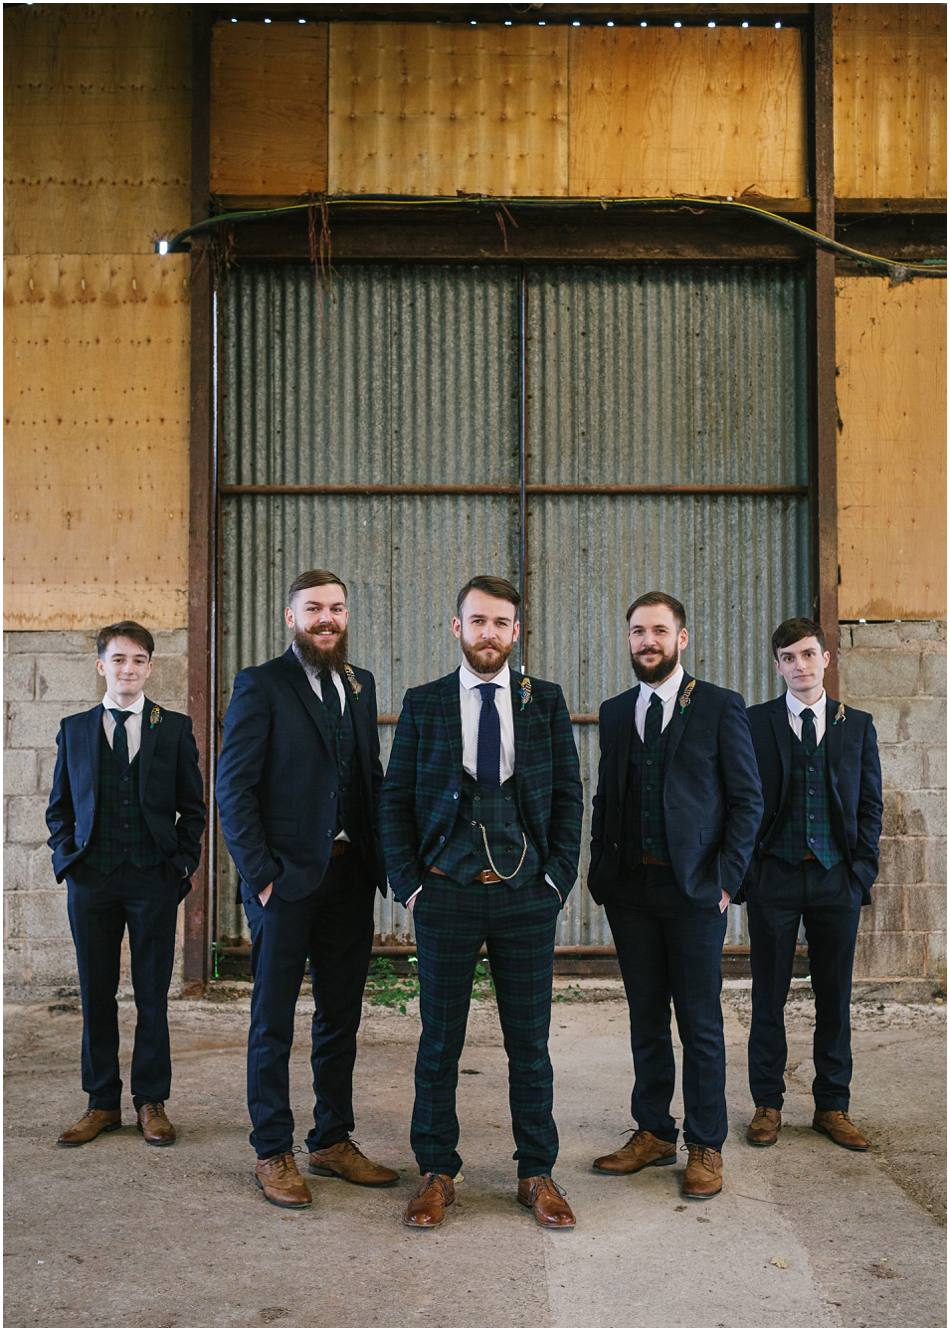 Portrait of a Groom with his Groomsmen on his wedding day at Curradine Barns